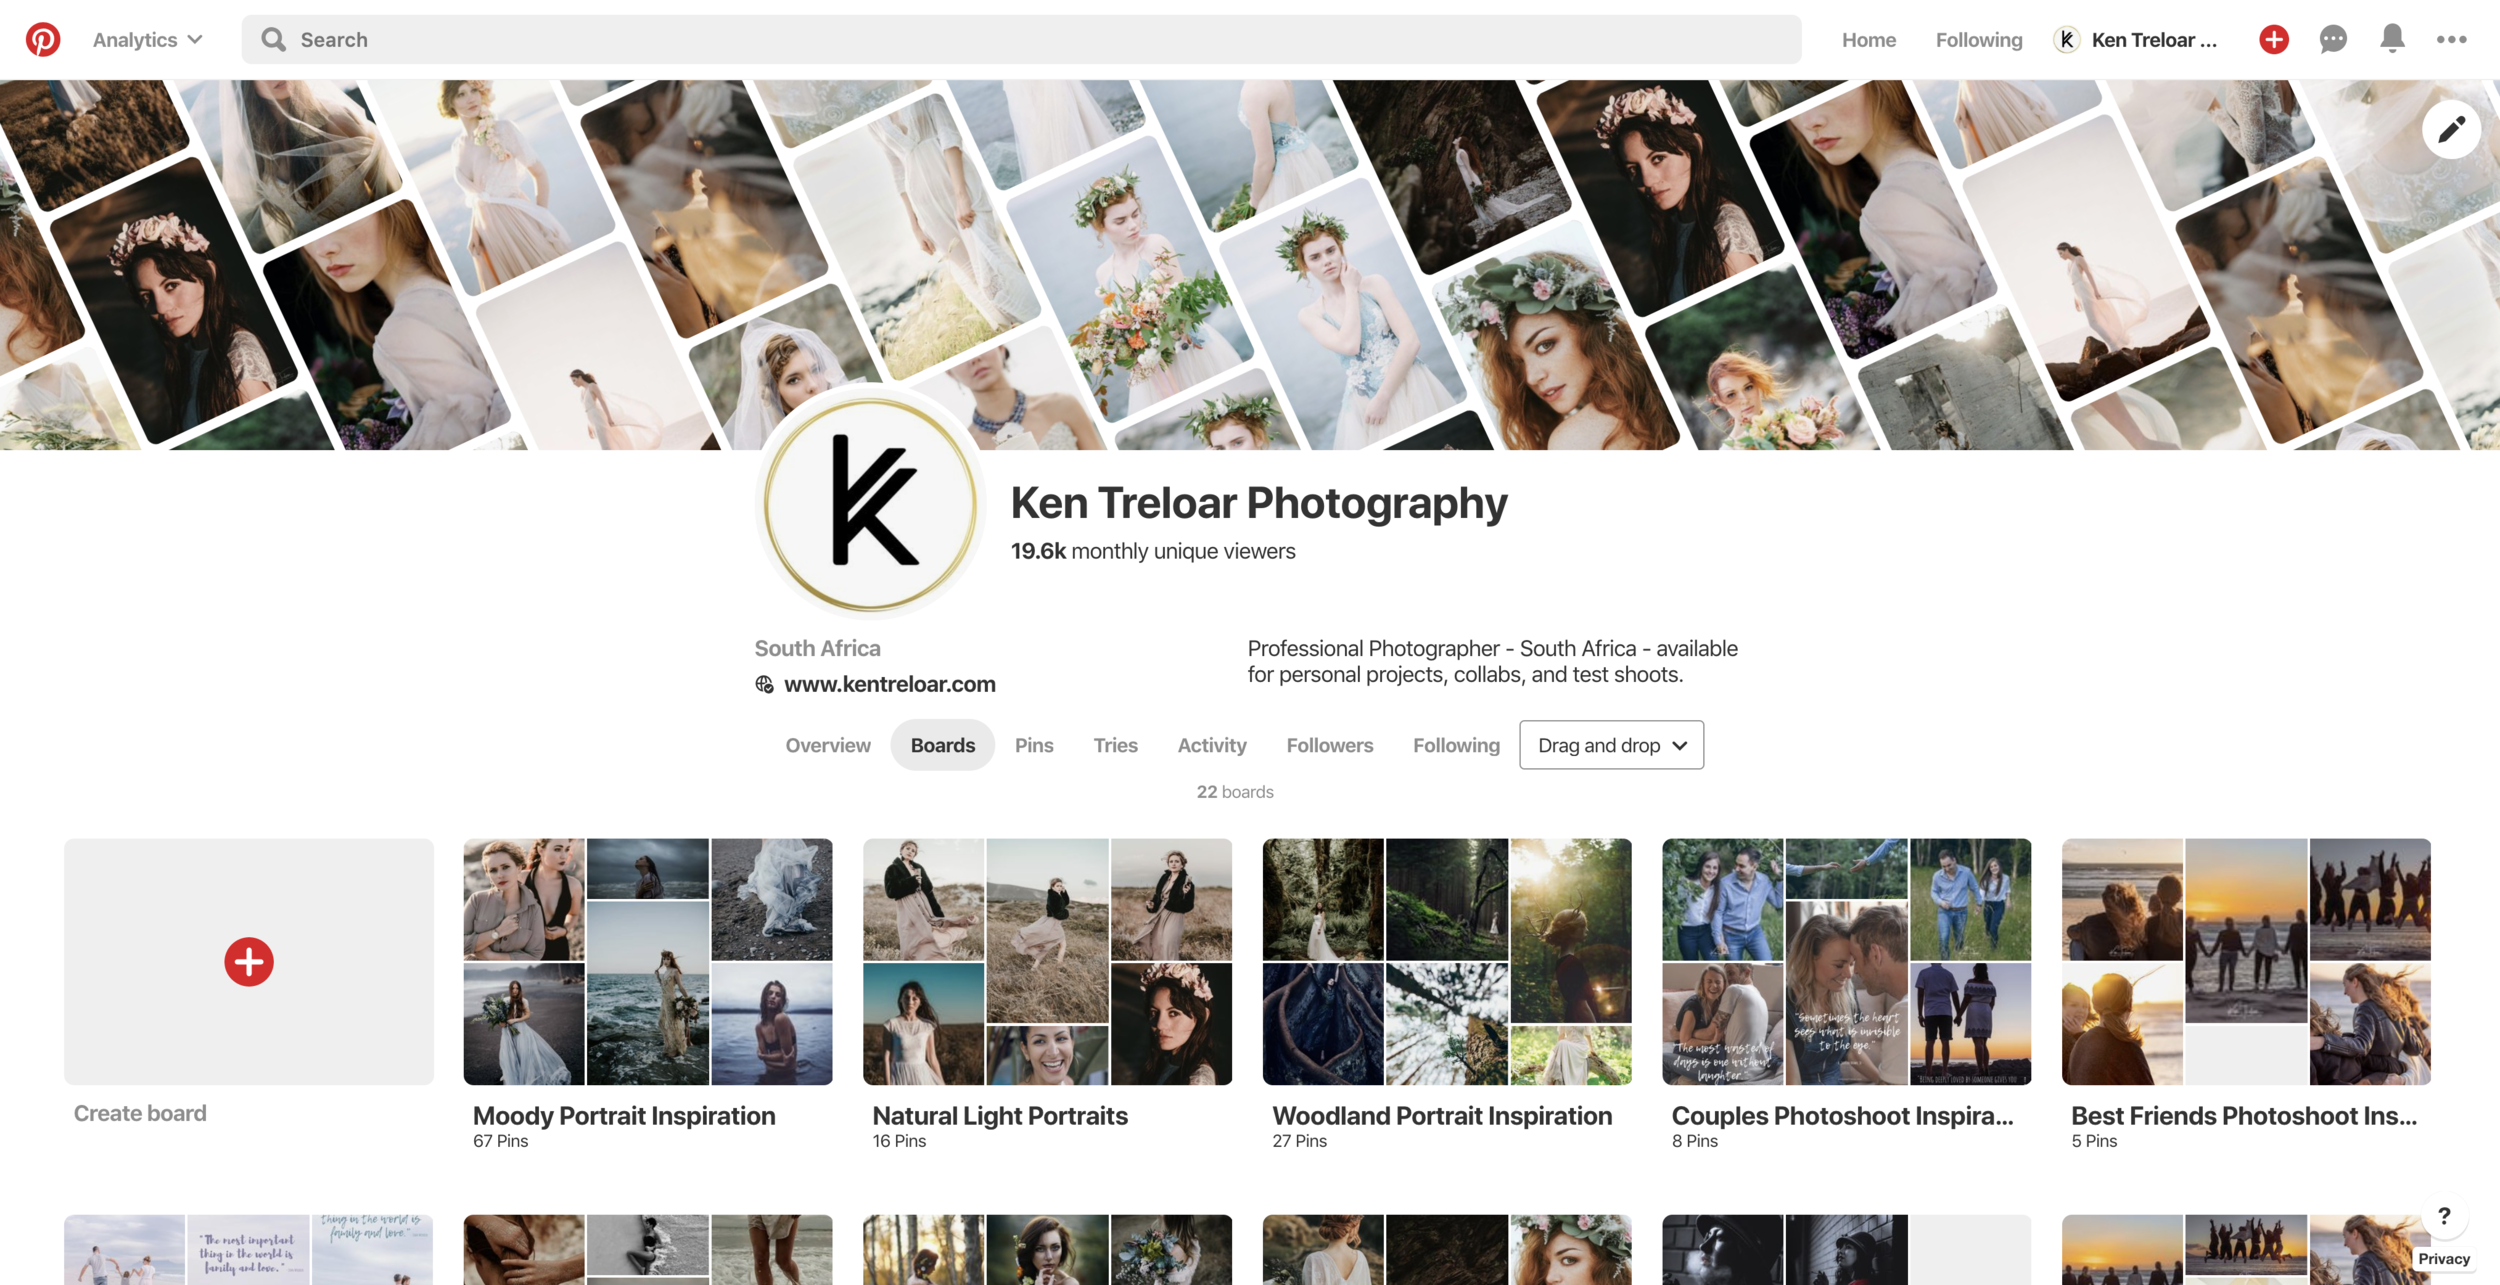 Ken Treloar Photography on Pinterest 2019.png